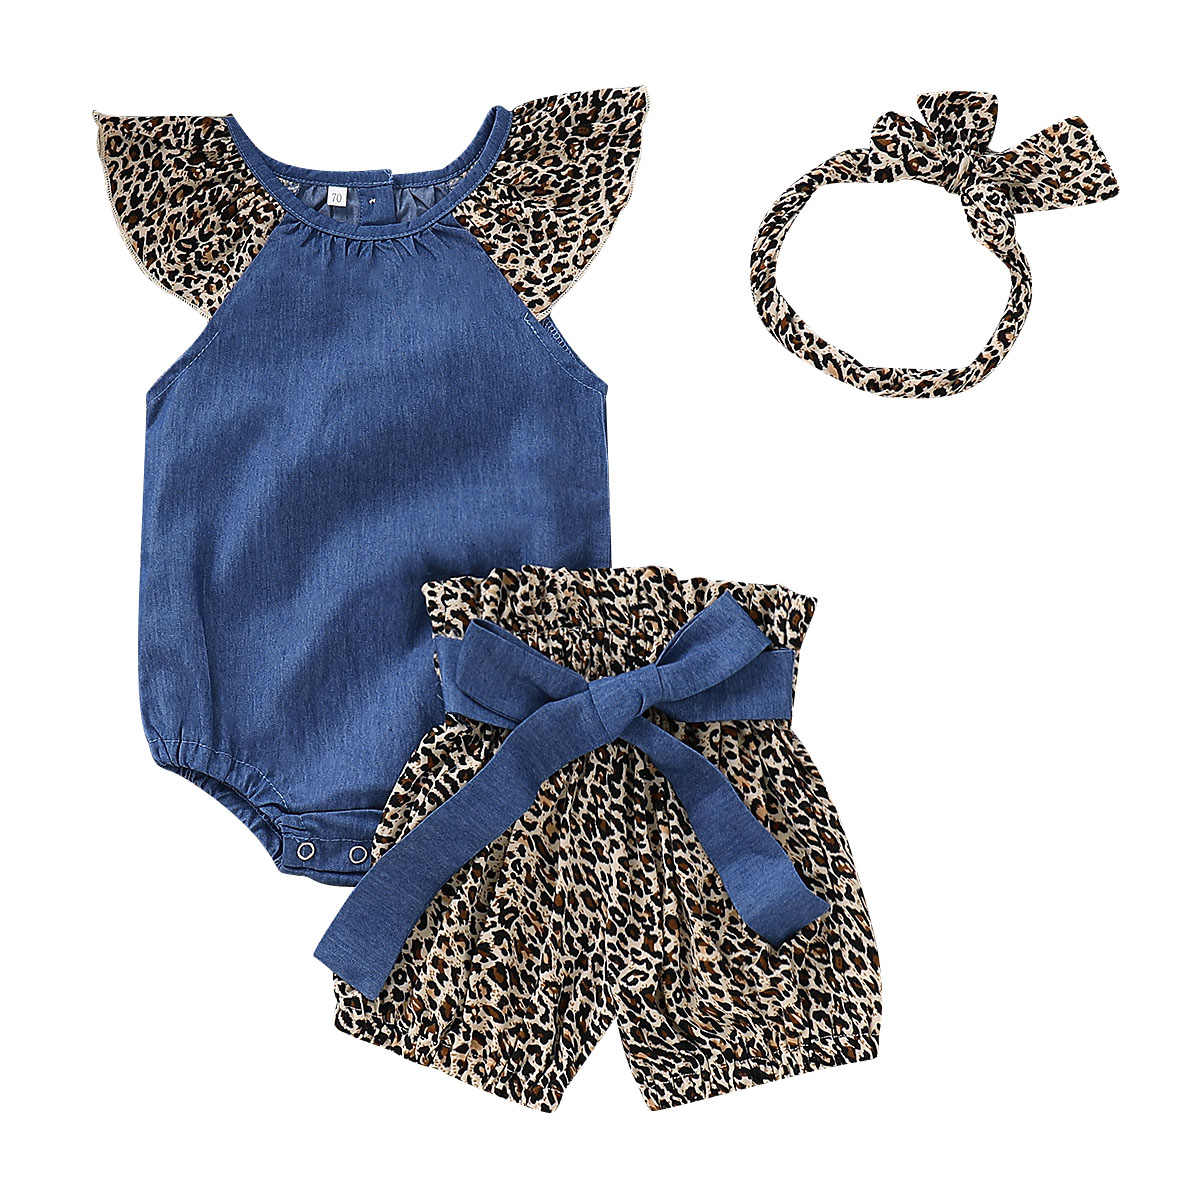 11d7f1fdbc20 Detail Feedback Questions about Kids Baby Girls Toddler Summer ...